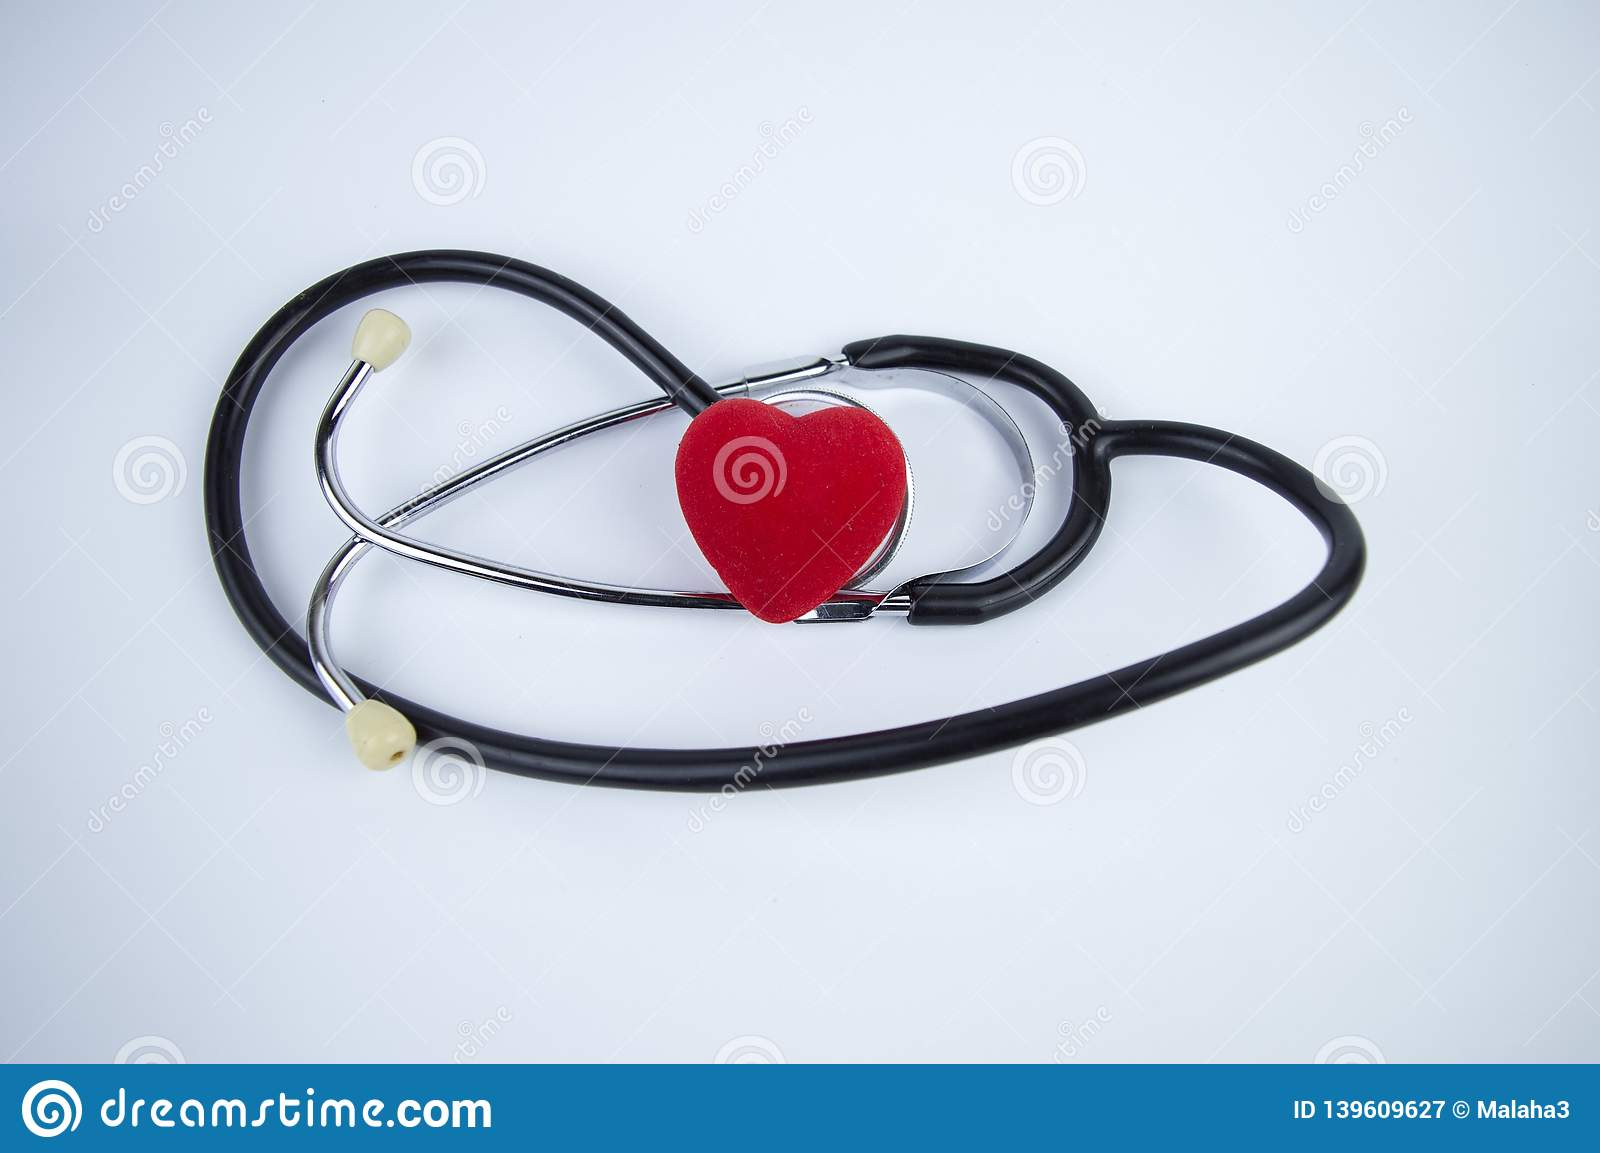 Stethoscope with heart on a white background